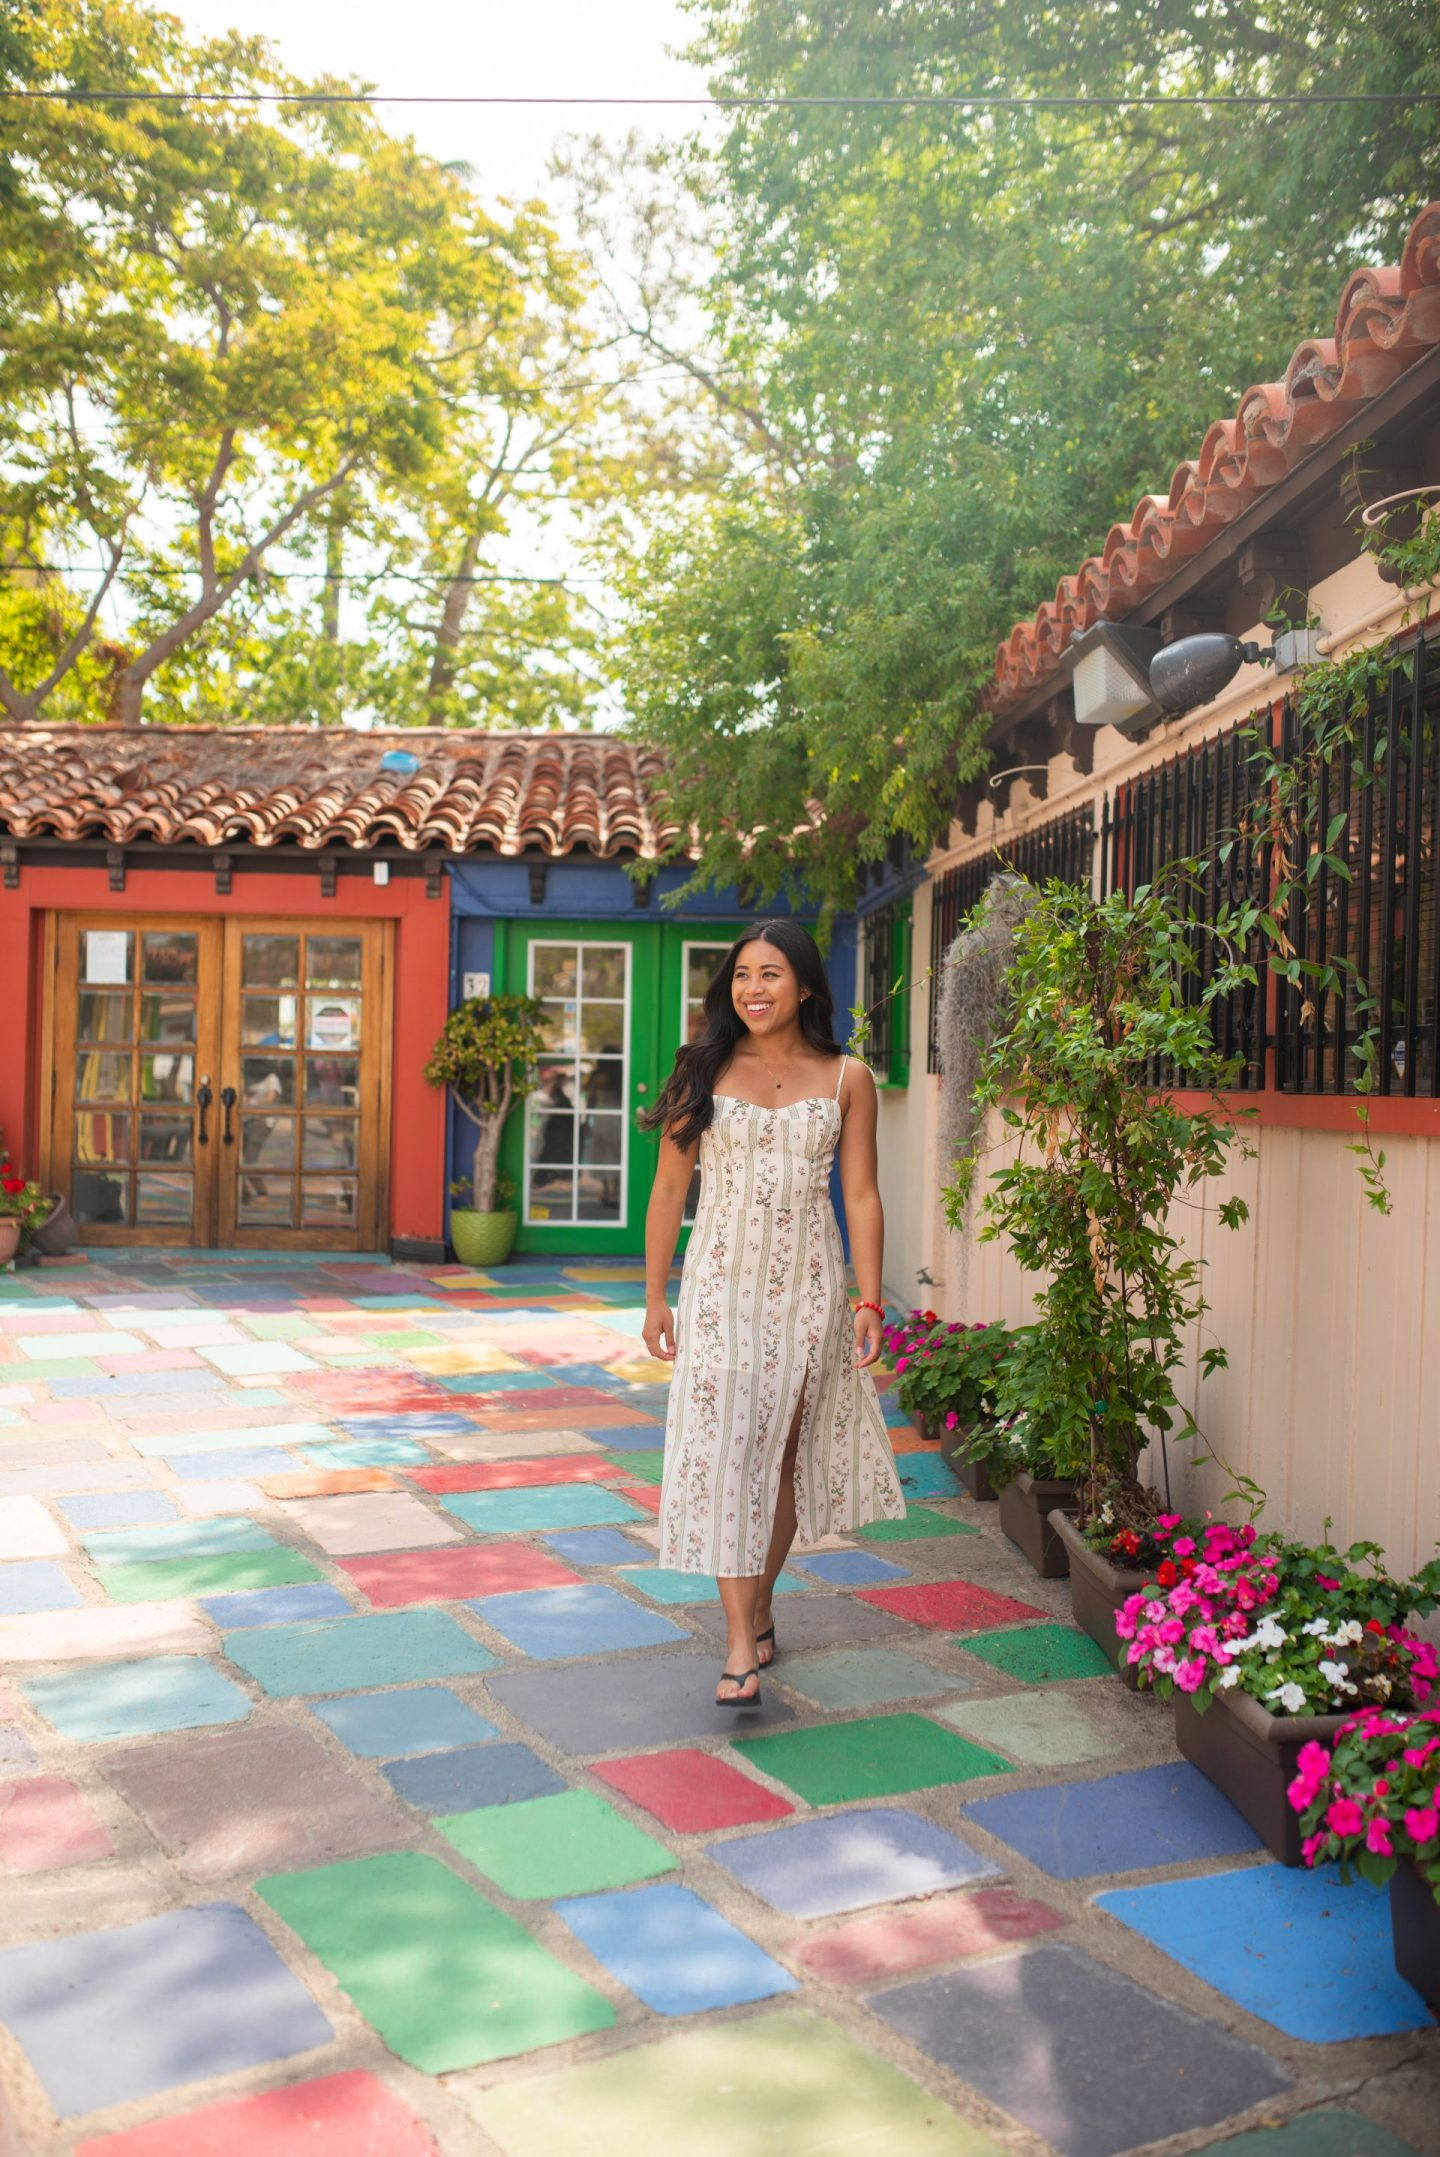 Spanish Village Center in Balboa Park - San Diego California - Things to See in San Diego - www.emmasedition.com